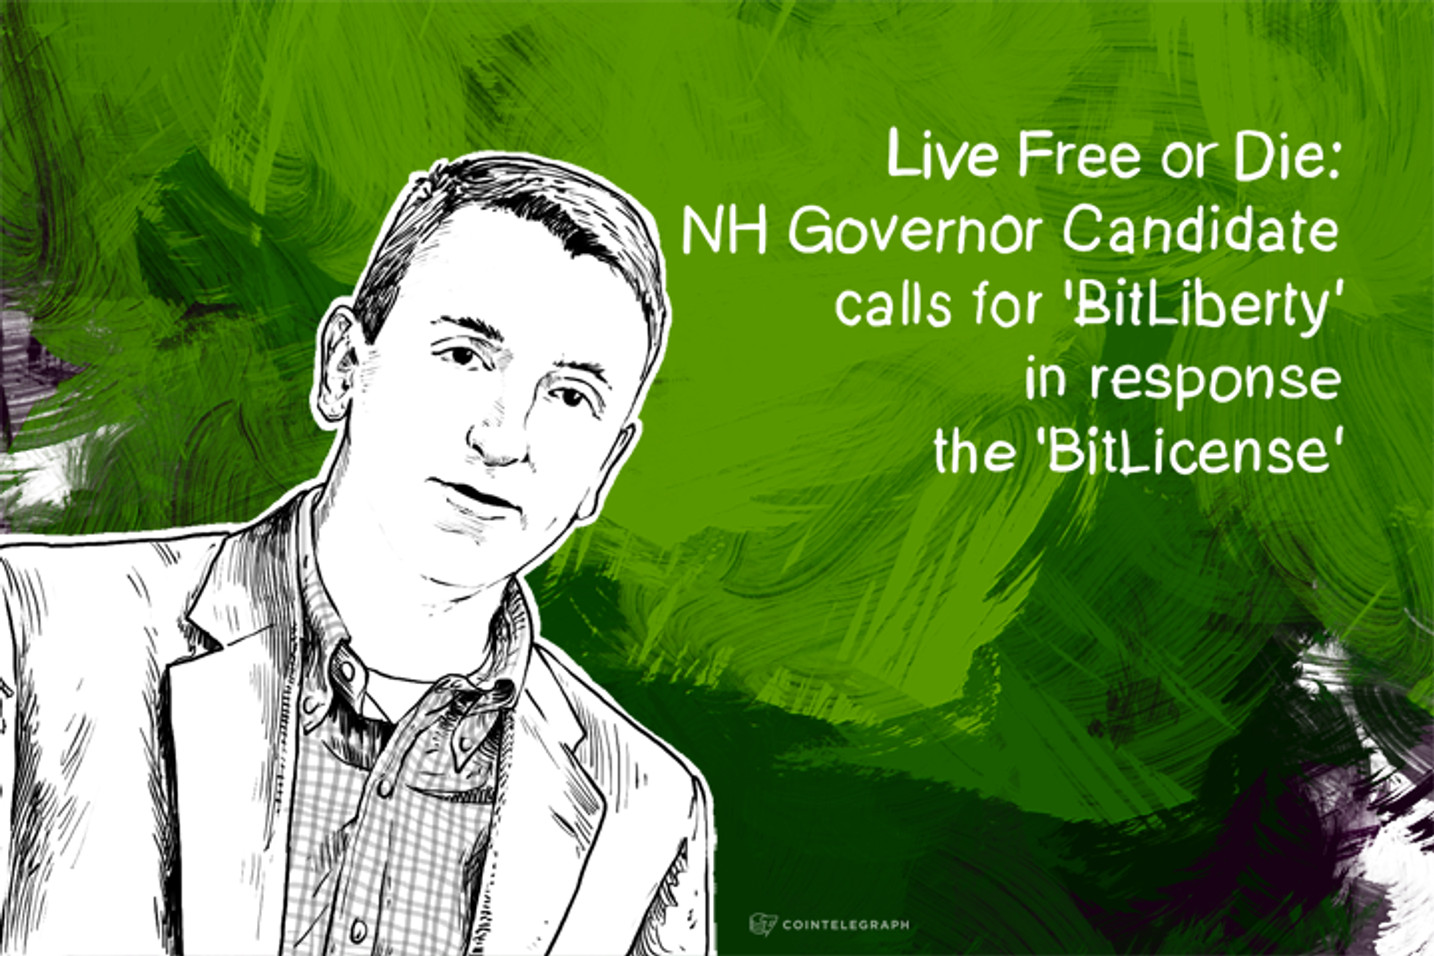 Live Free or Die: NH Governor Candidate calls for 'BitLiberty' in response to the 'BitLicense'